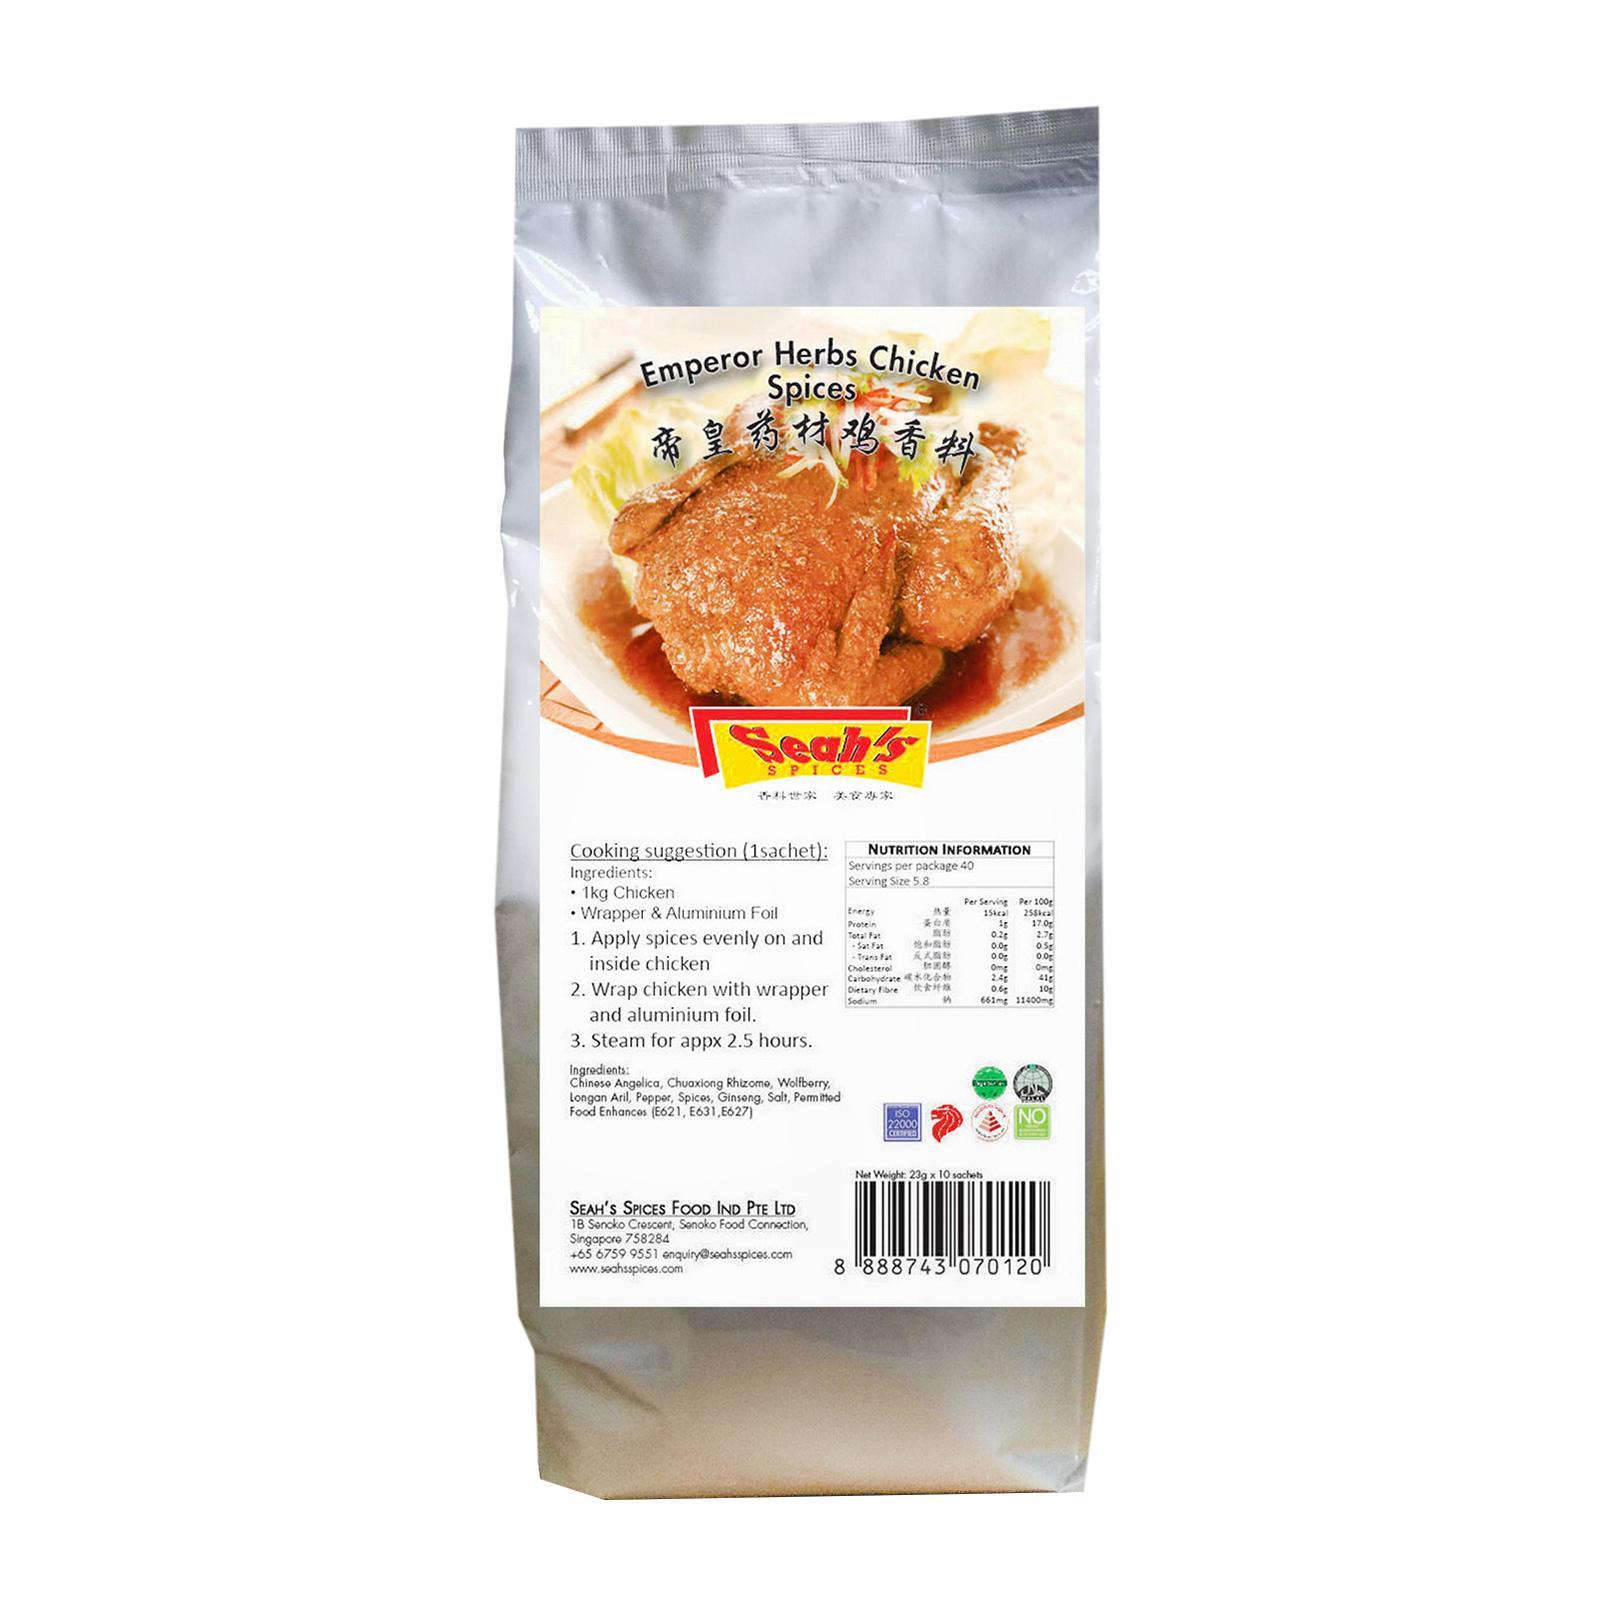 Seahs Spices - Emperor Herbs Chicken Spices - 23g X 3 Pack (charges Includes Shipping Fee) By Best Buy Mini Mart.